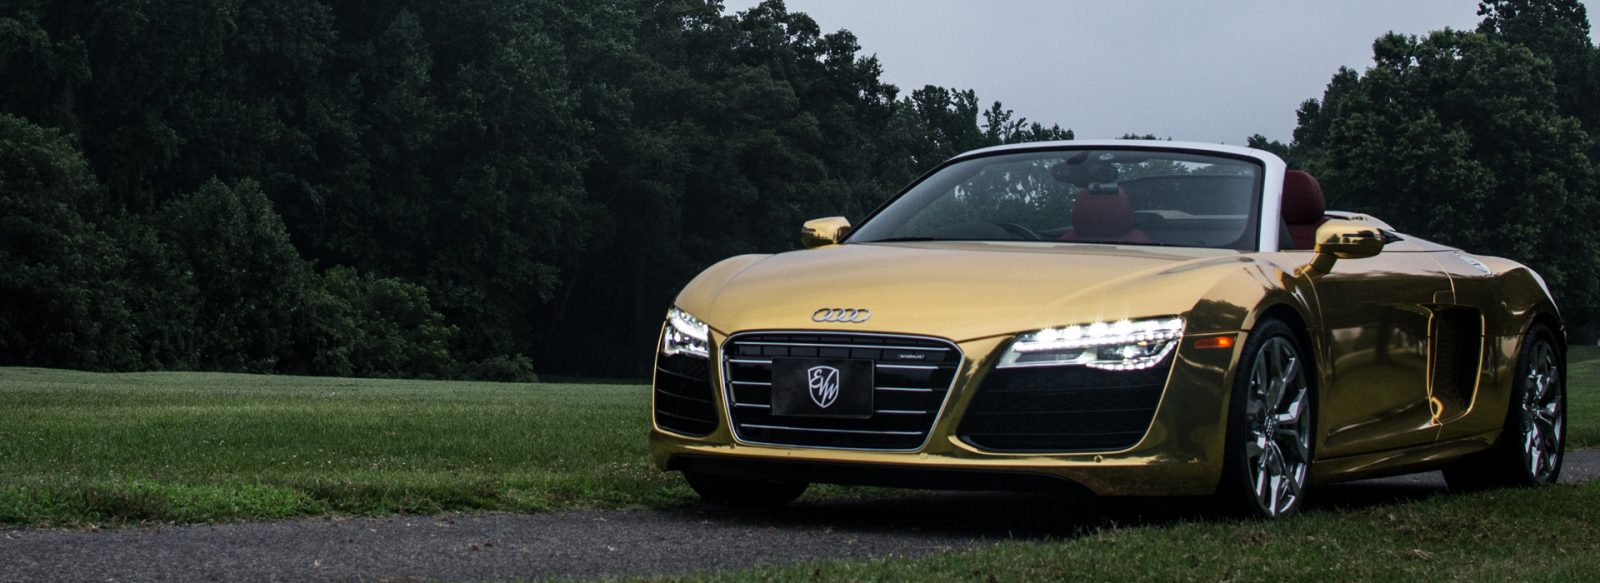 audi-r8-goldchrome-slider-evw